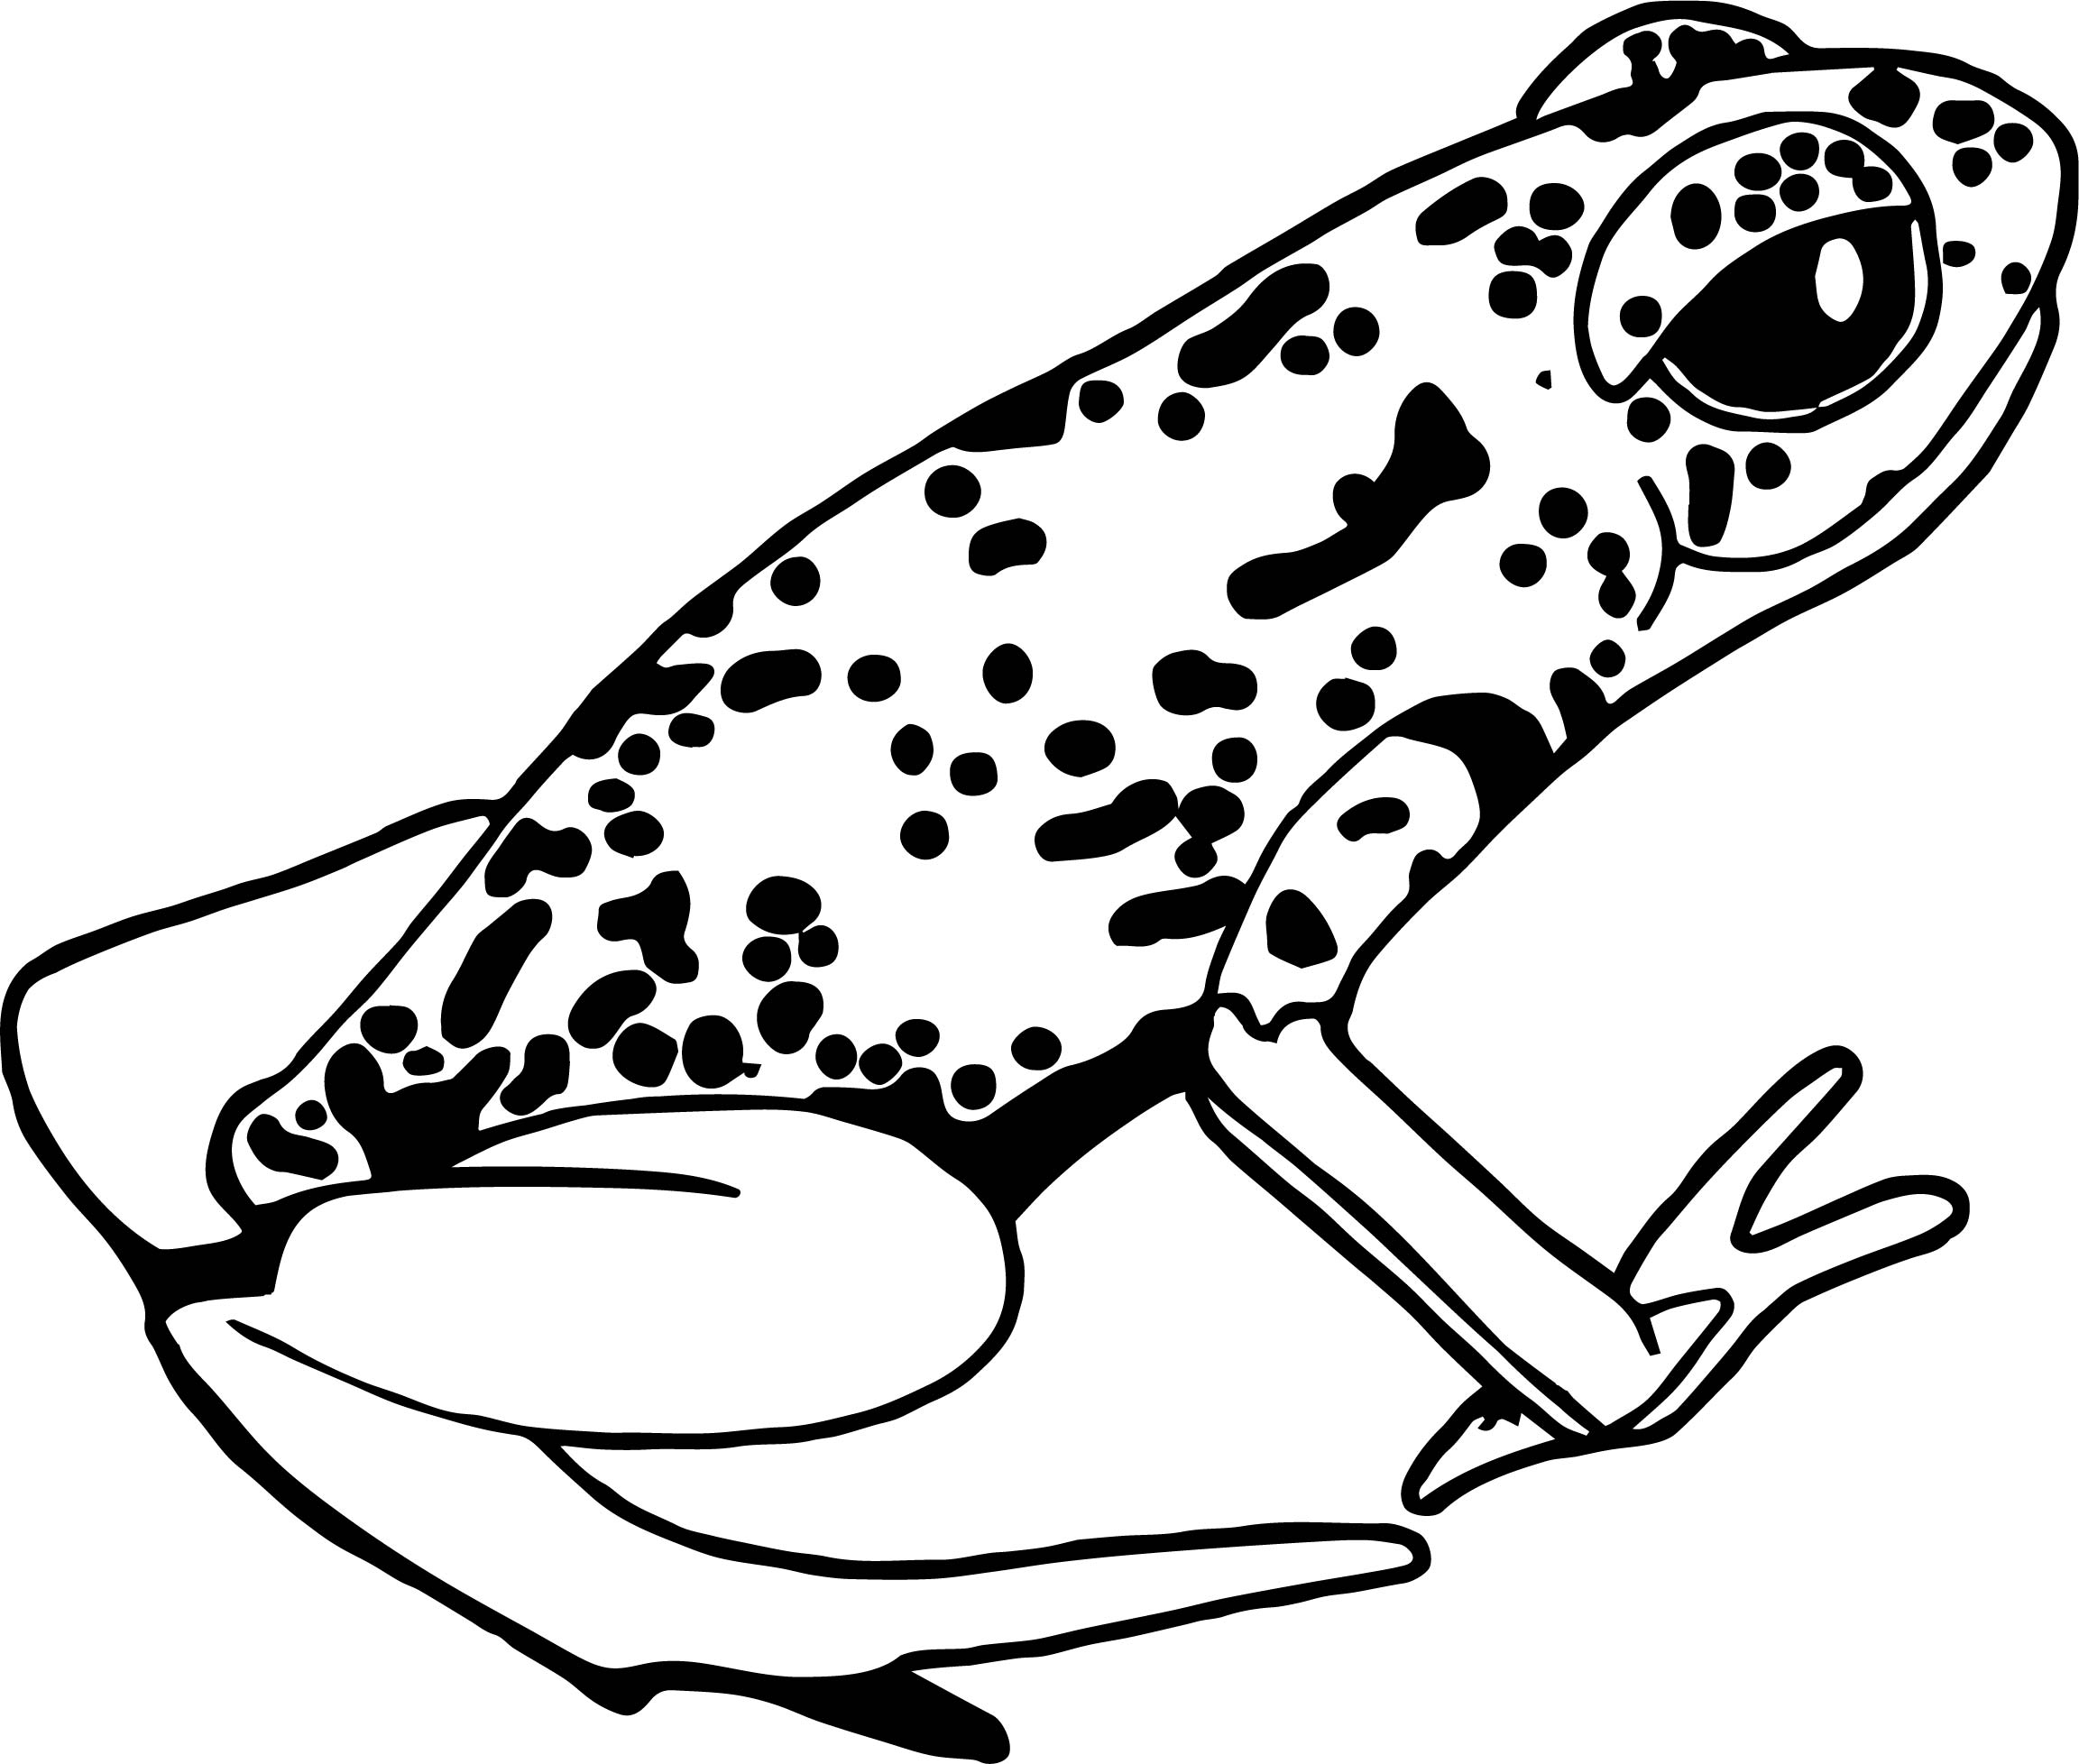 Rainforest Amphibian Coloring Page